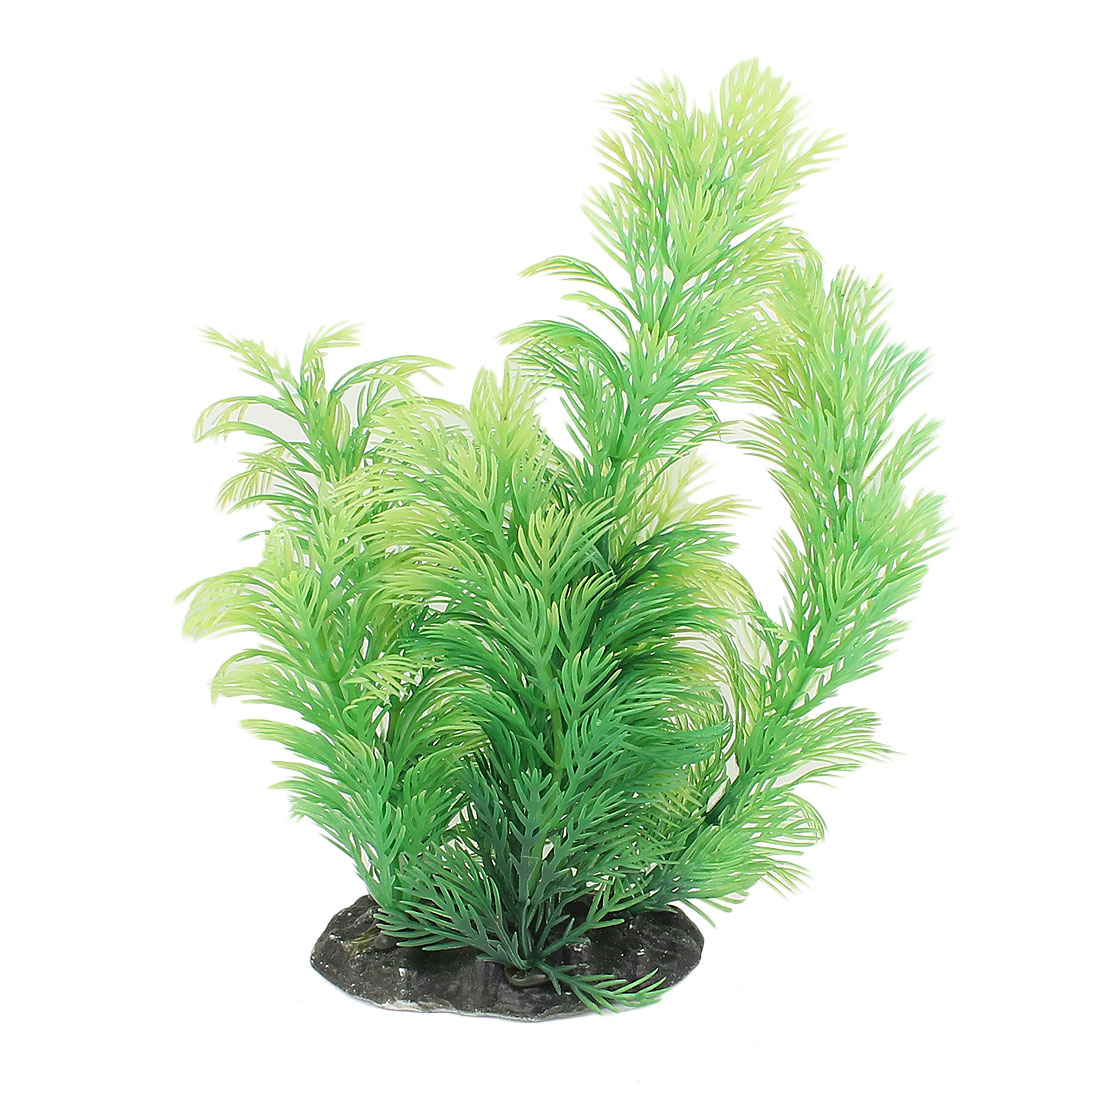 Plastic Underwater Aquatic Plant Fish Tank Aquarium Decor 20cm High Green